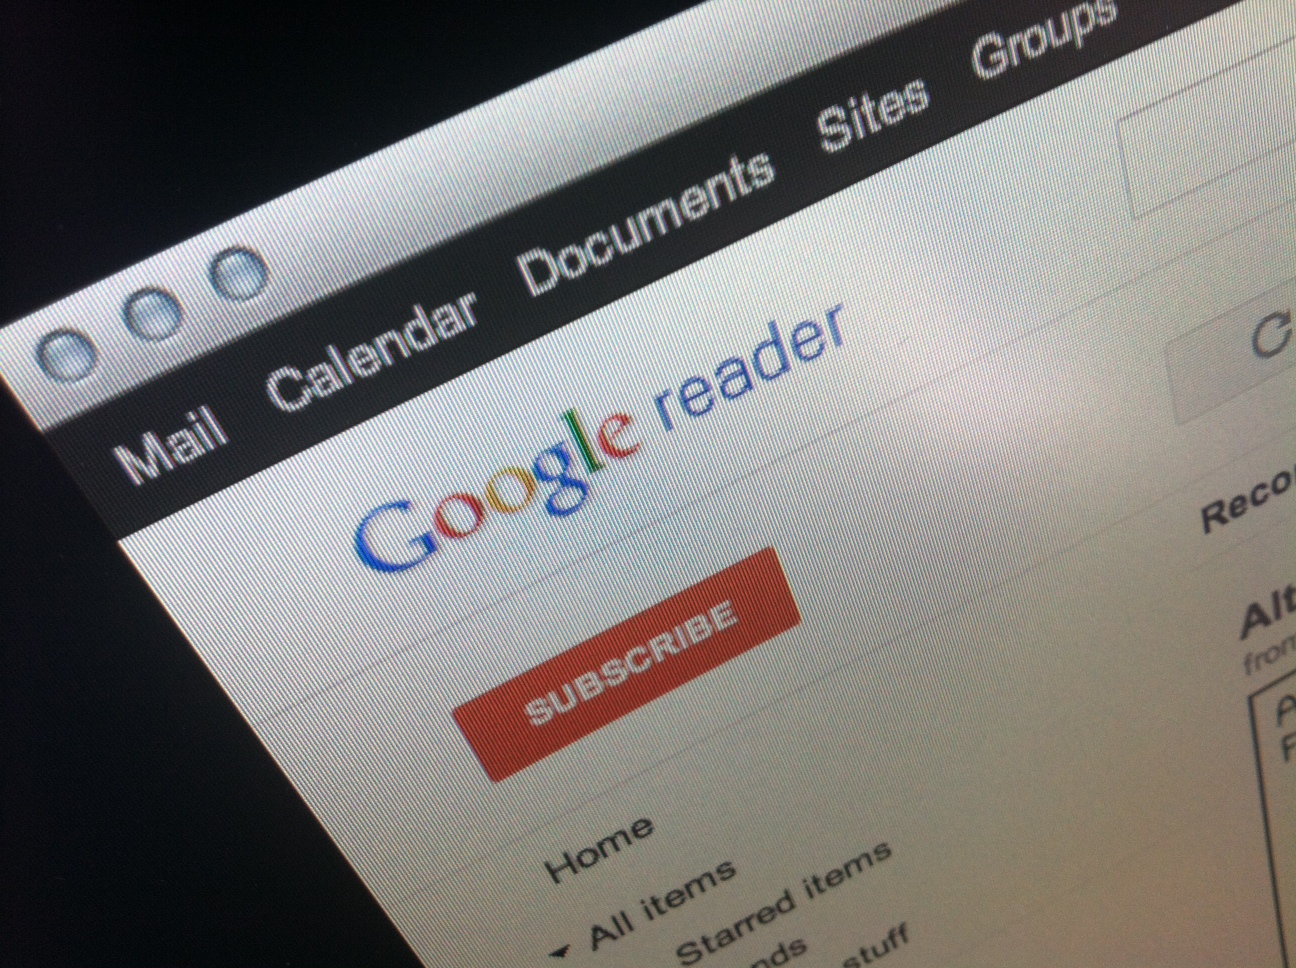 Google Reader not refreshing automatically for you? You're not alone